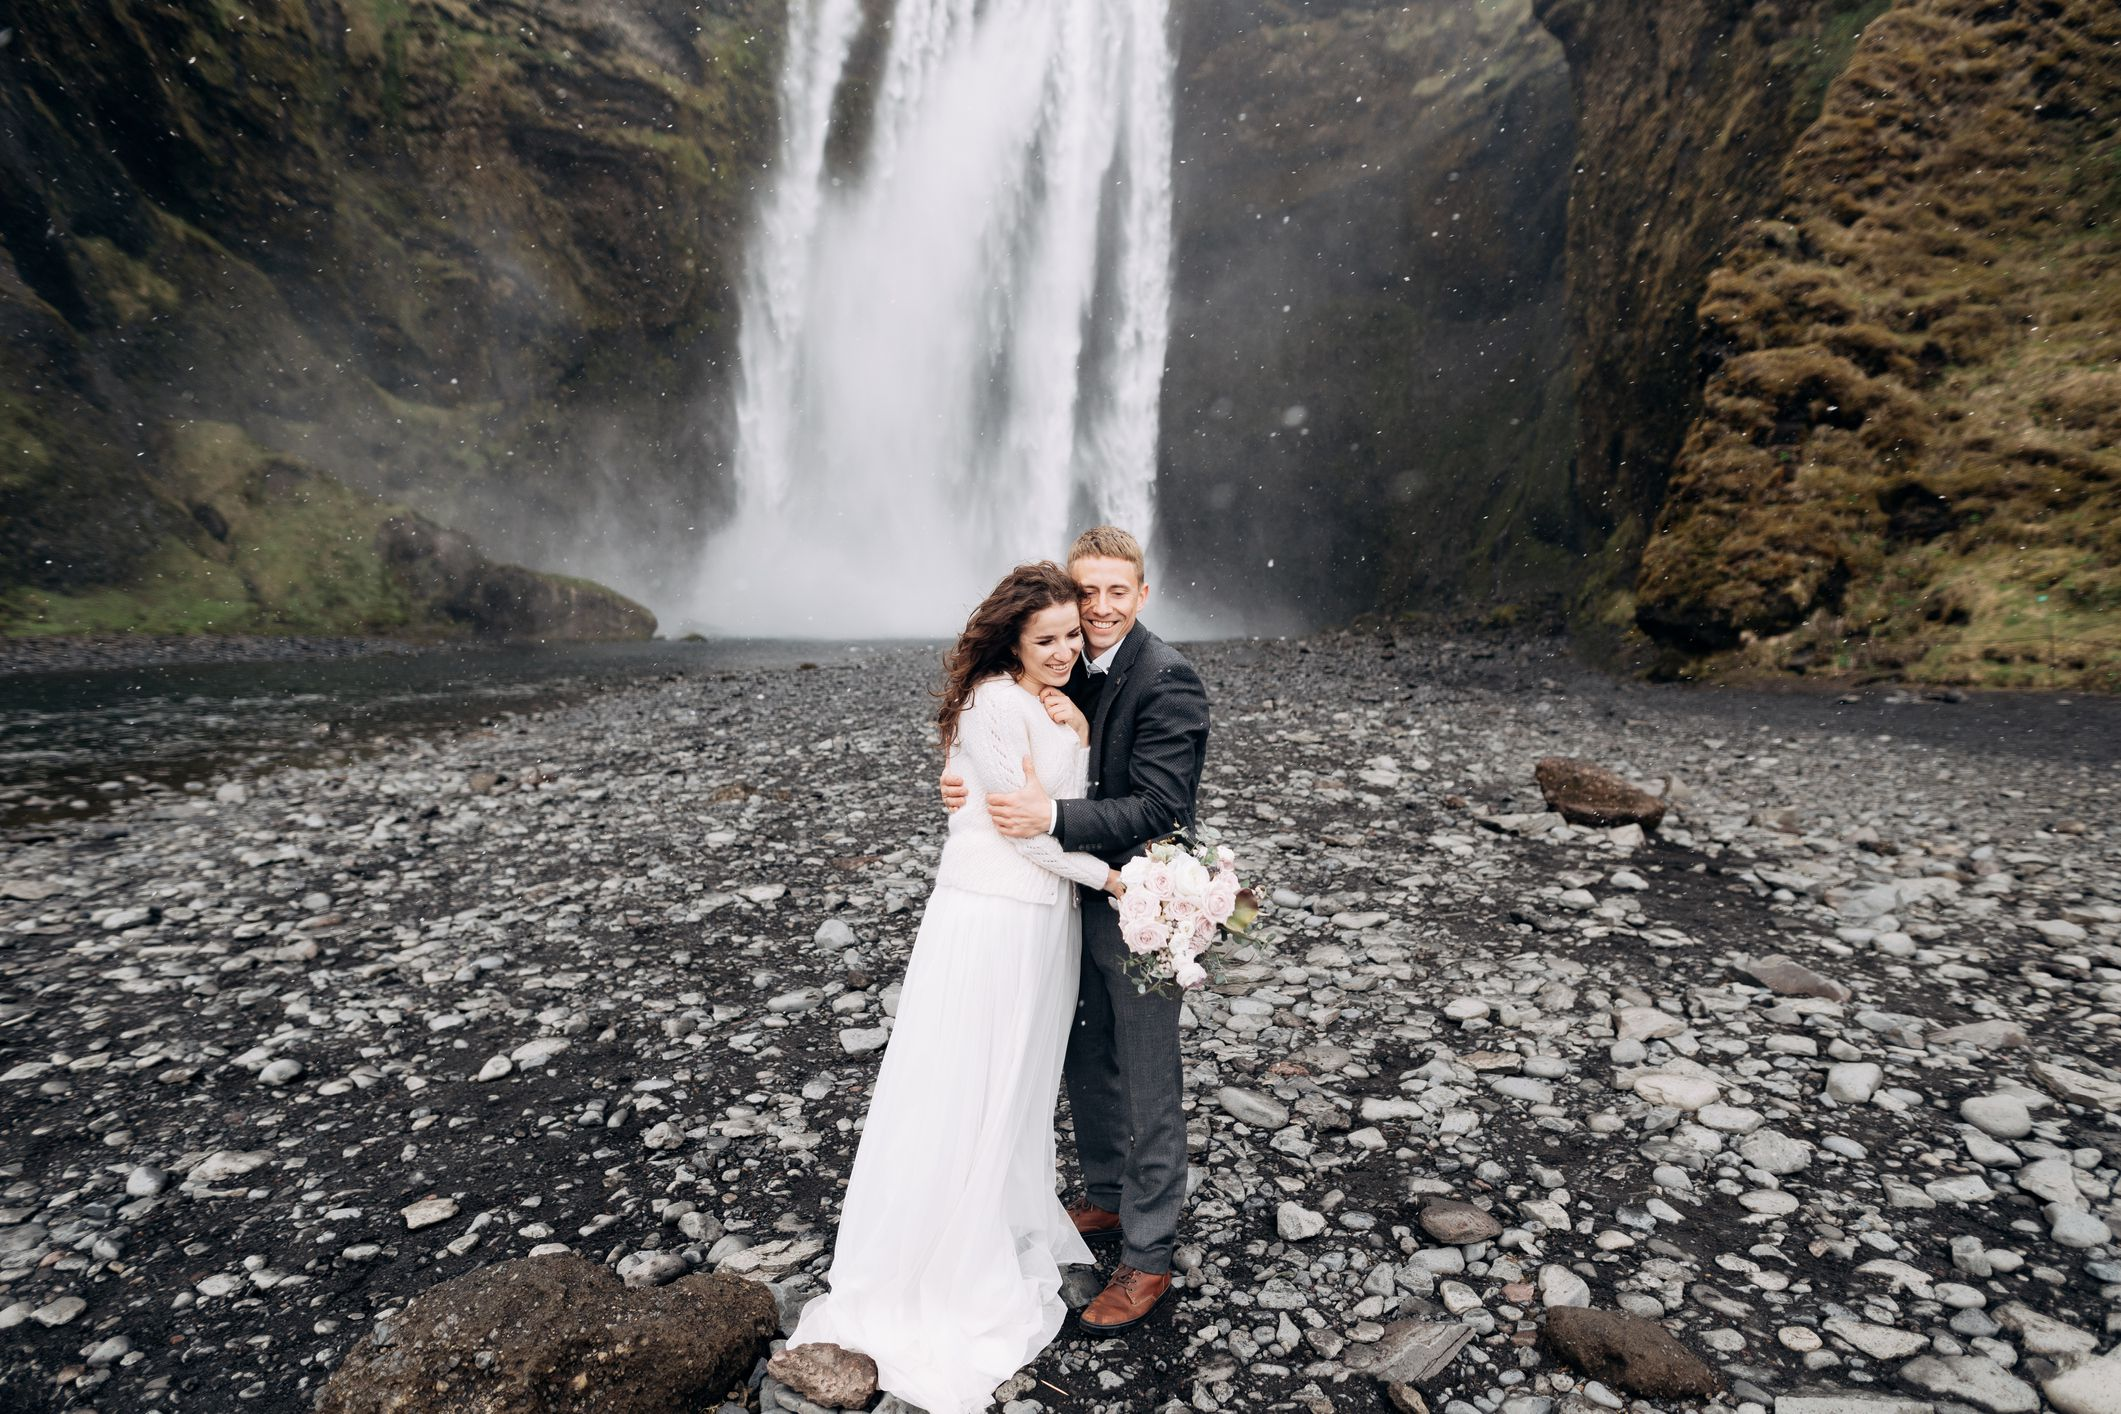 The 9 Best Elopement Packages of 2021